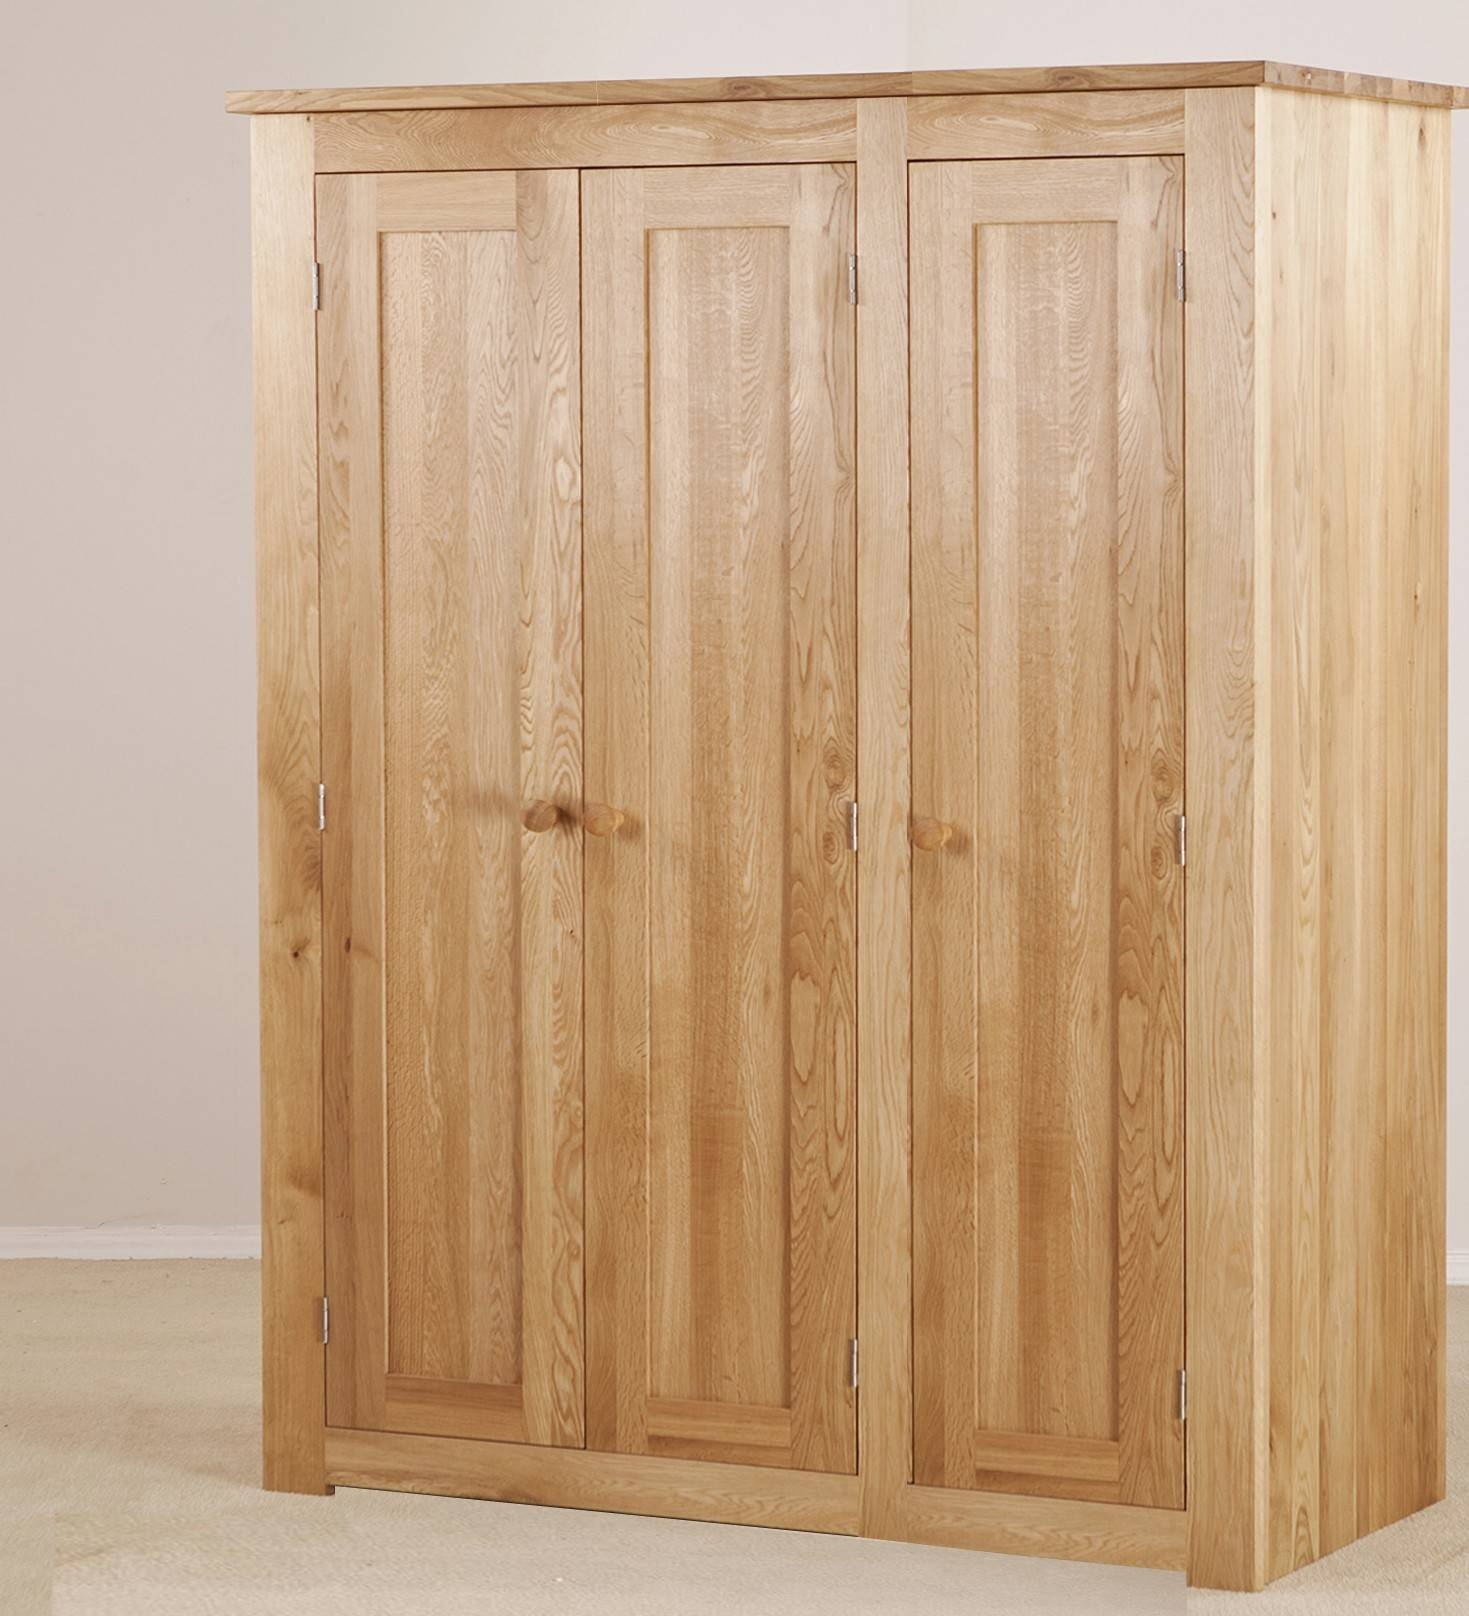 Torino Solid Oak Large 3 Door Wardrobe | Furniture4Yourhome in Large Oak Wardrobes (Image 13 of 15)